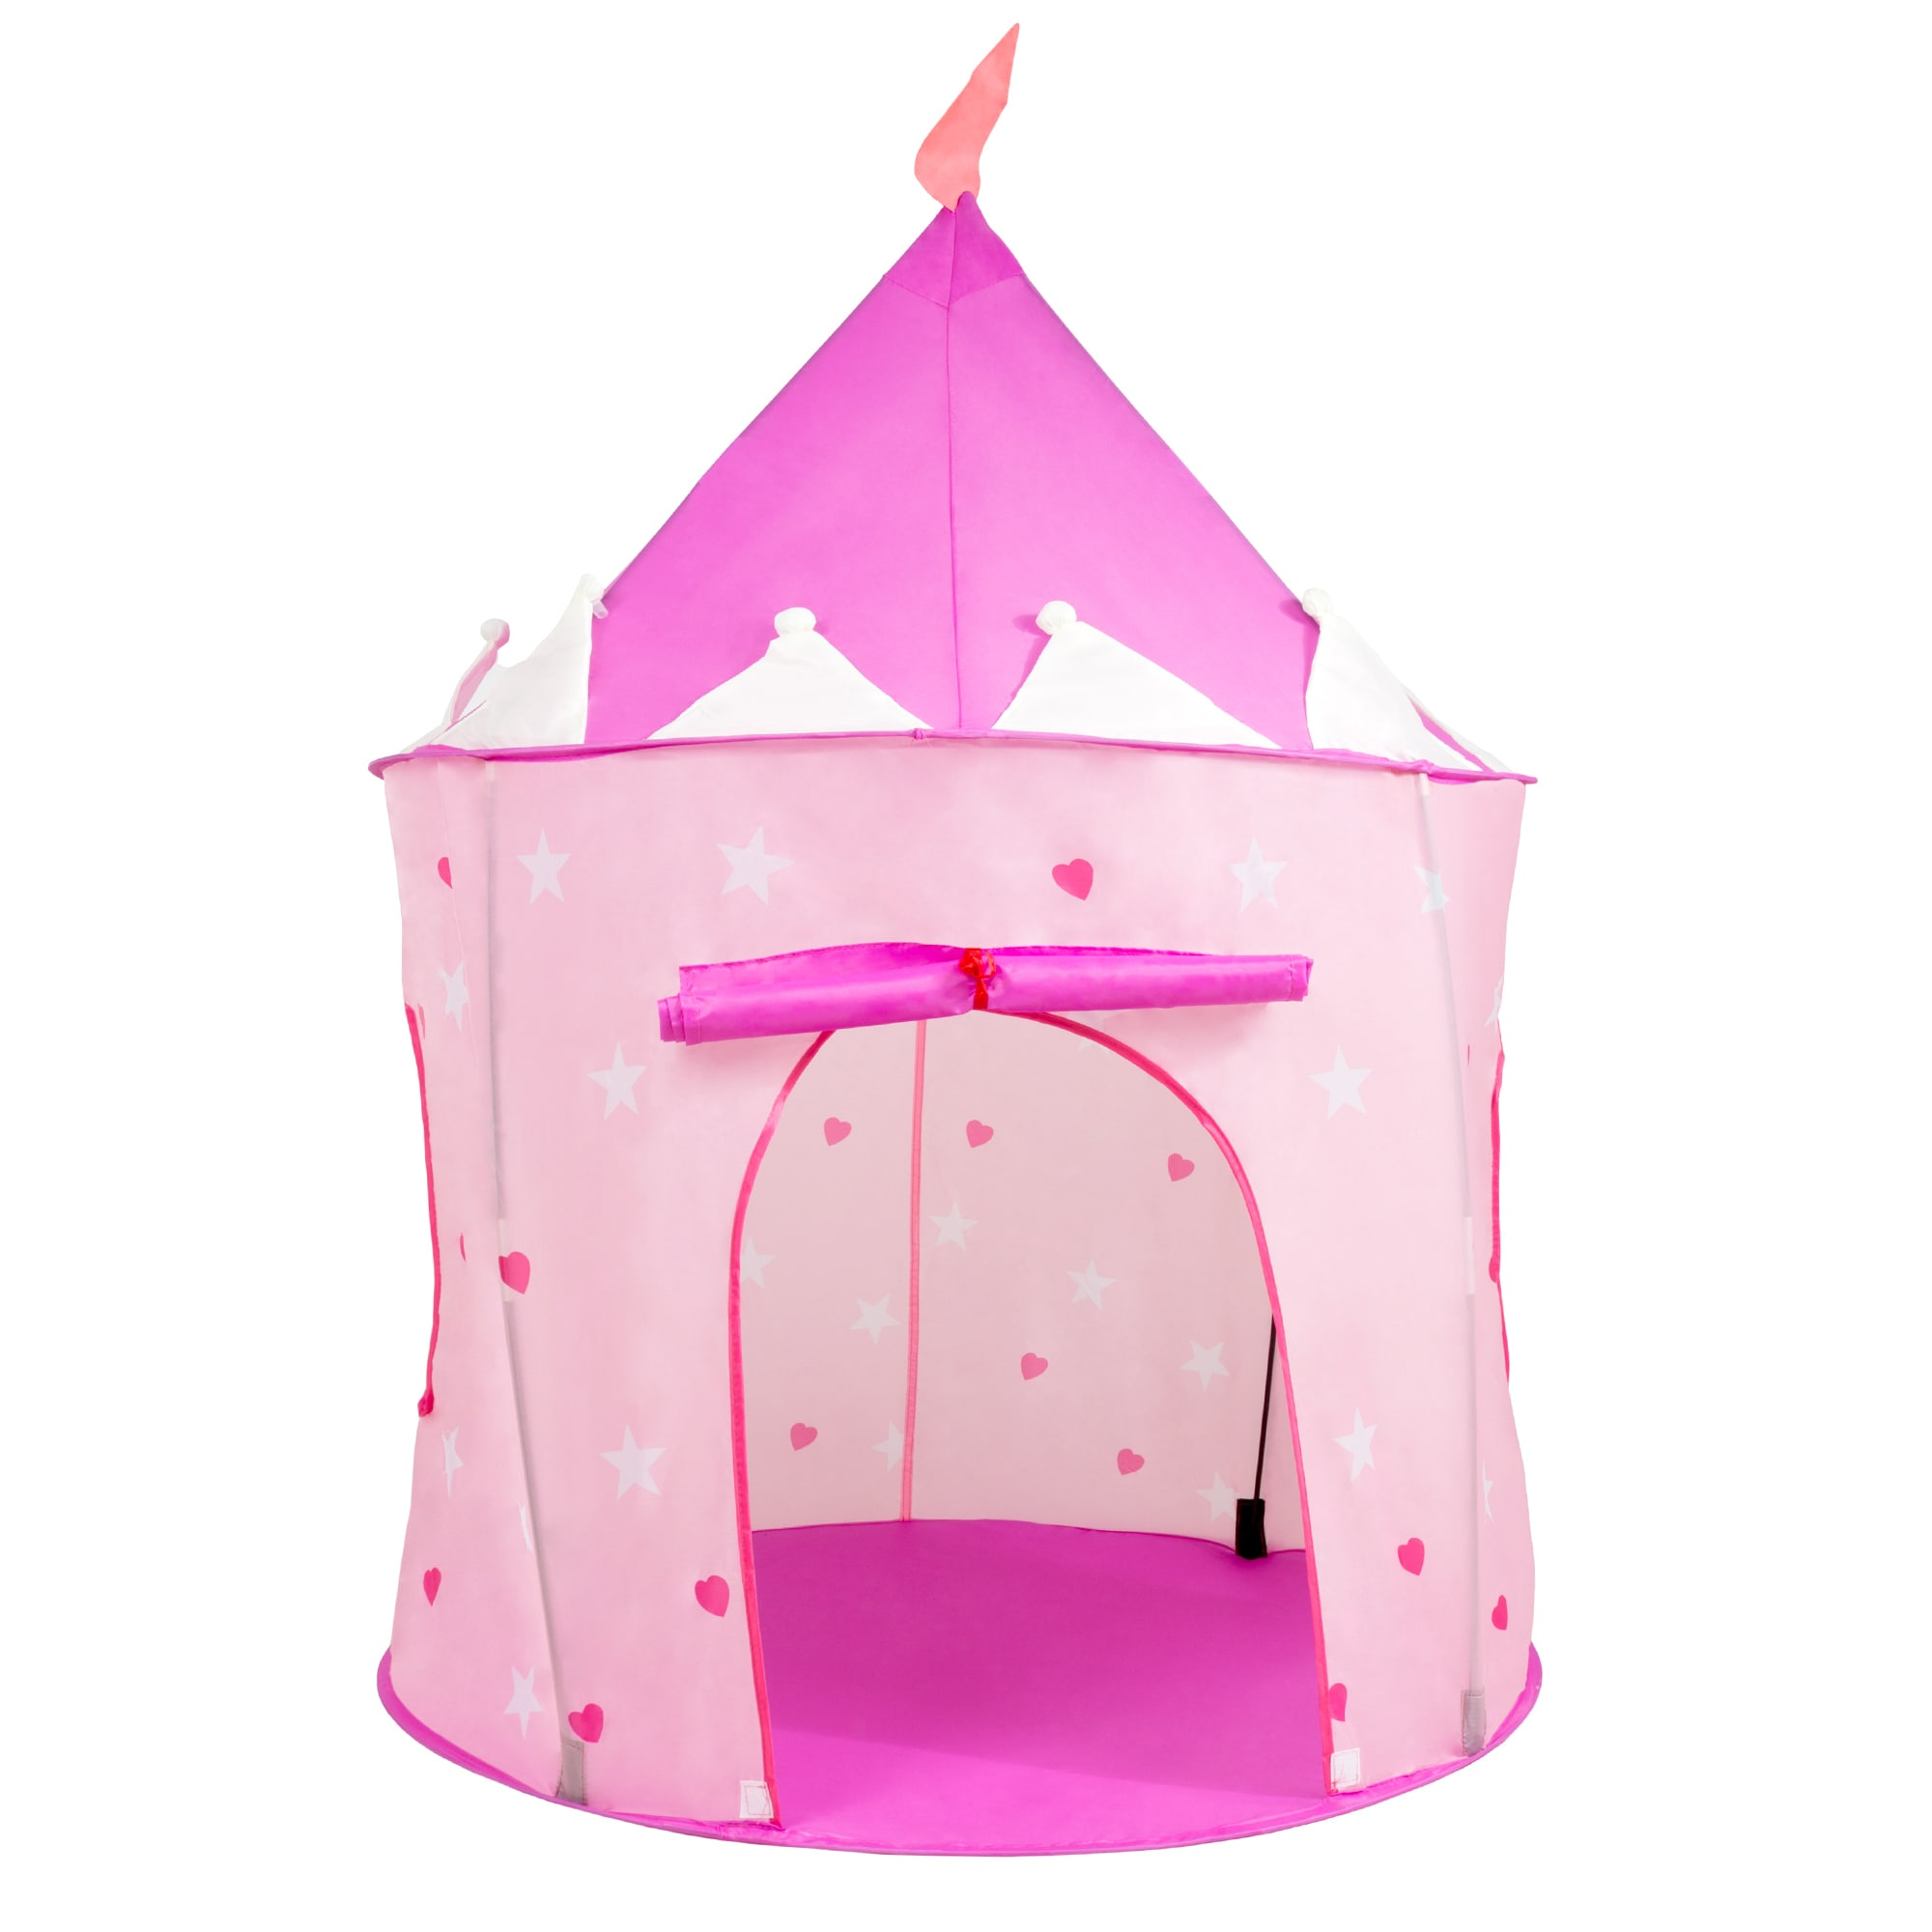 Kids Play Tent Kids Play Tent Princess Castle Pop Playhouse For Indoor Outdoor Pink Playroom Toy Foldable With Carrying Bag By Hey Play